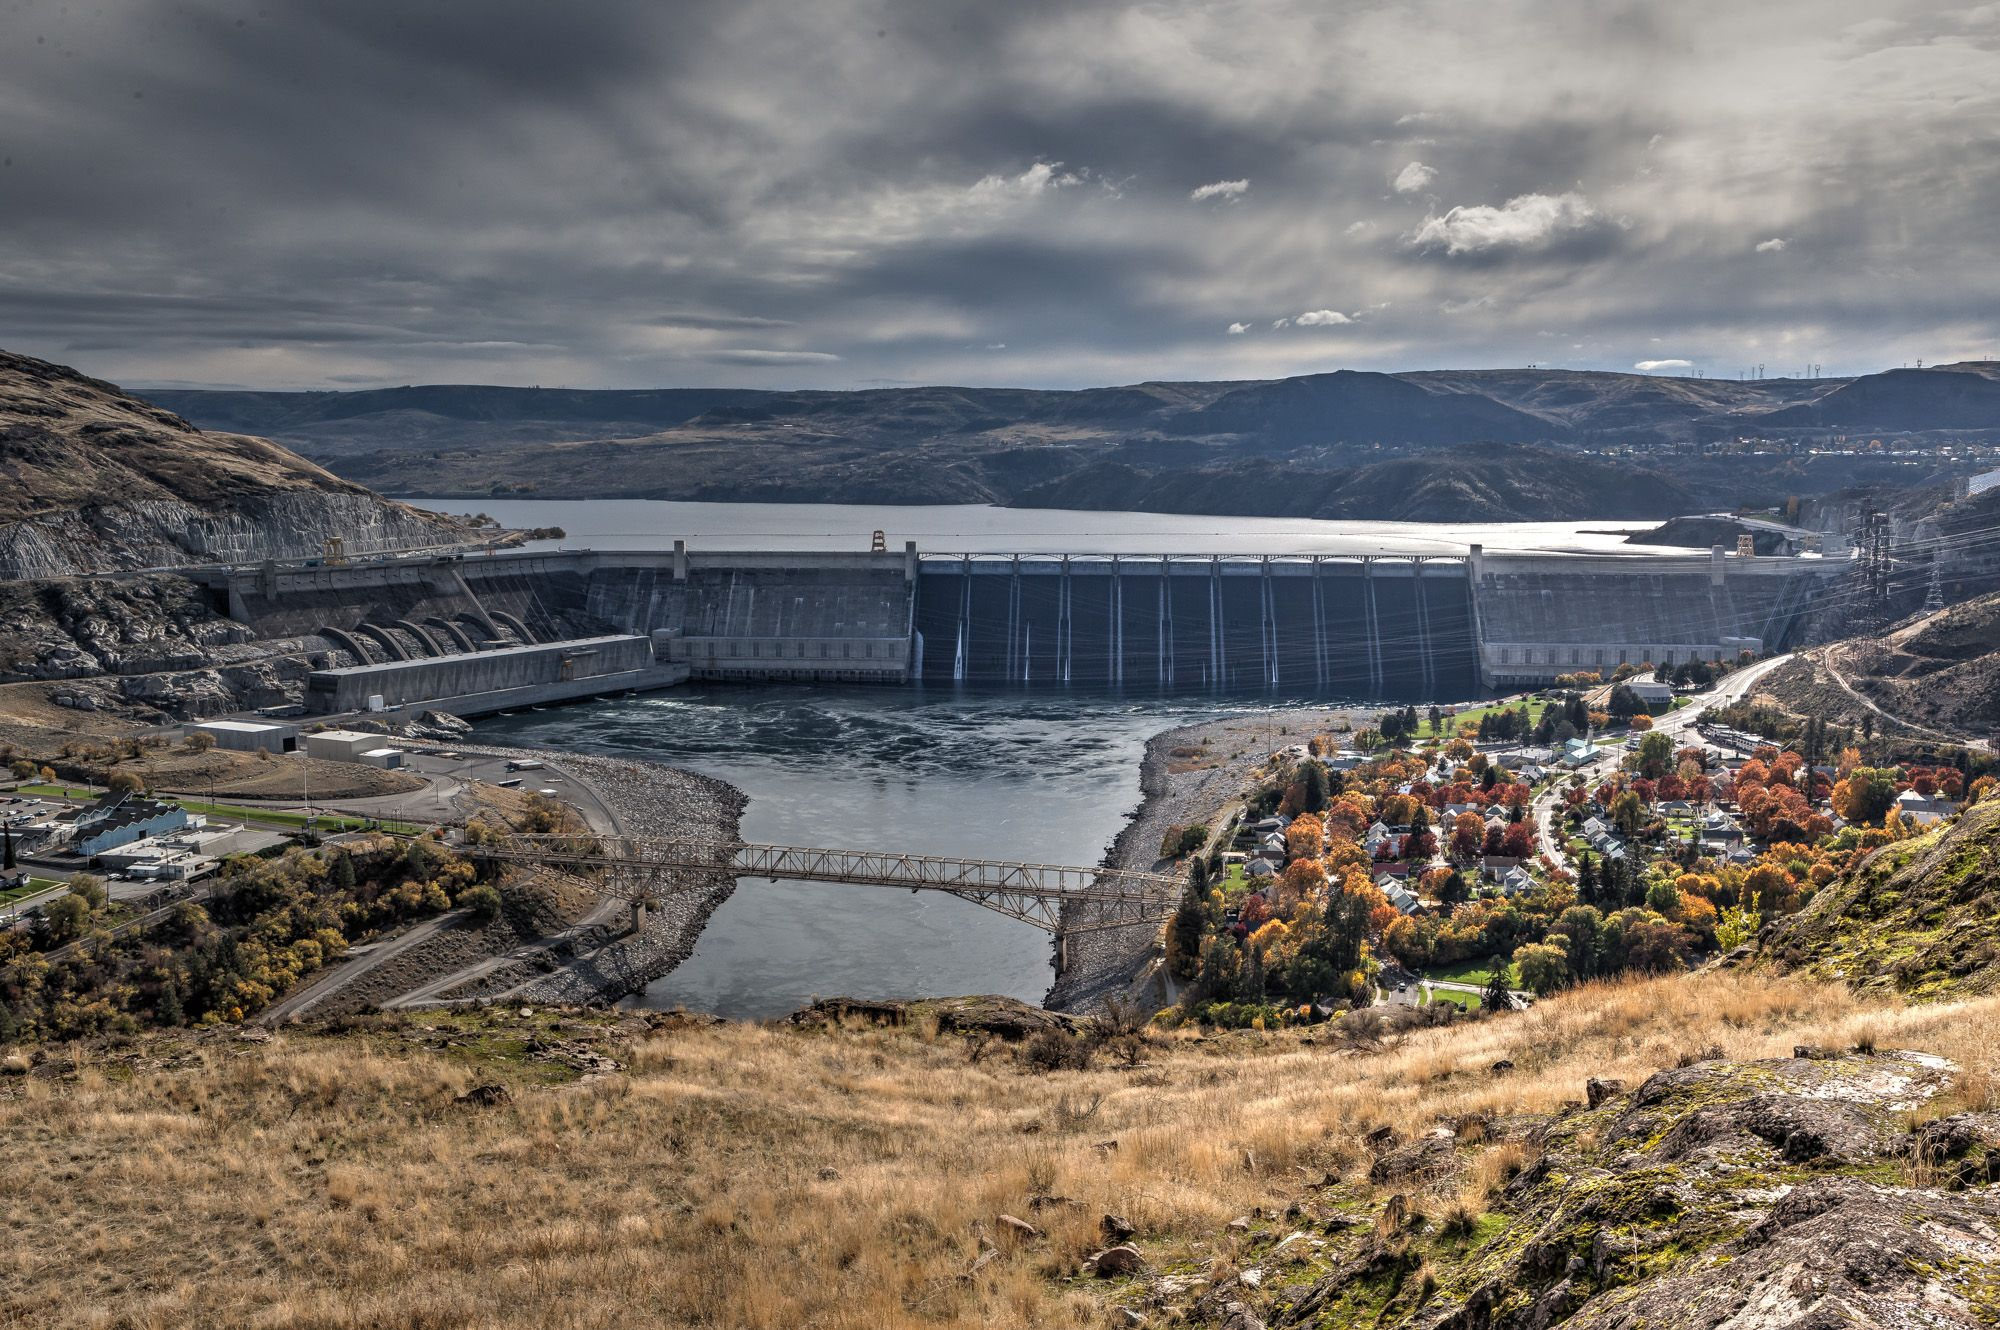 Challenge accepted three dam tour along the columbia river gate grand coulee dam view from viewpoint publicscrutiny